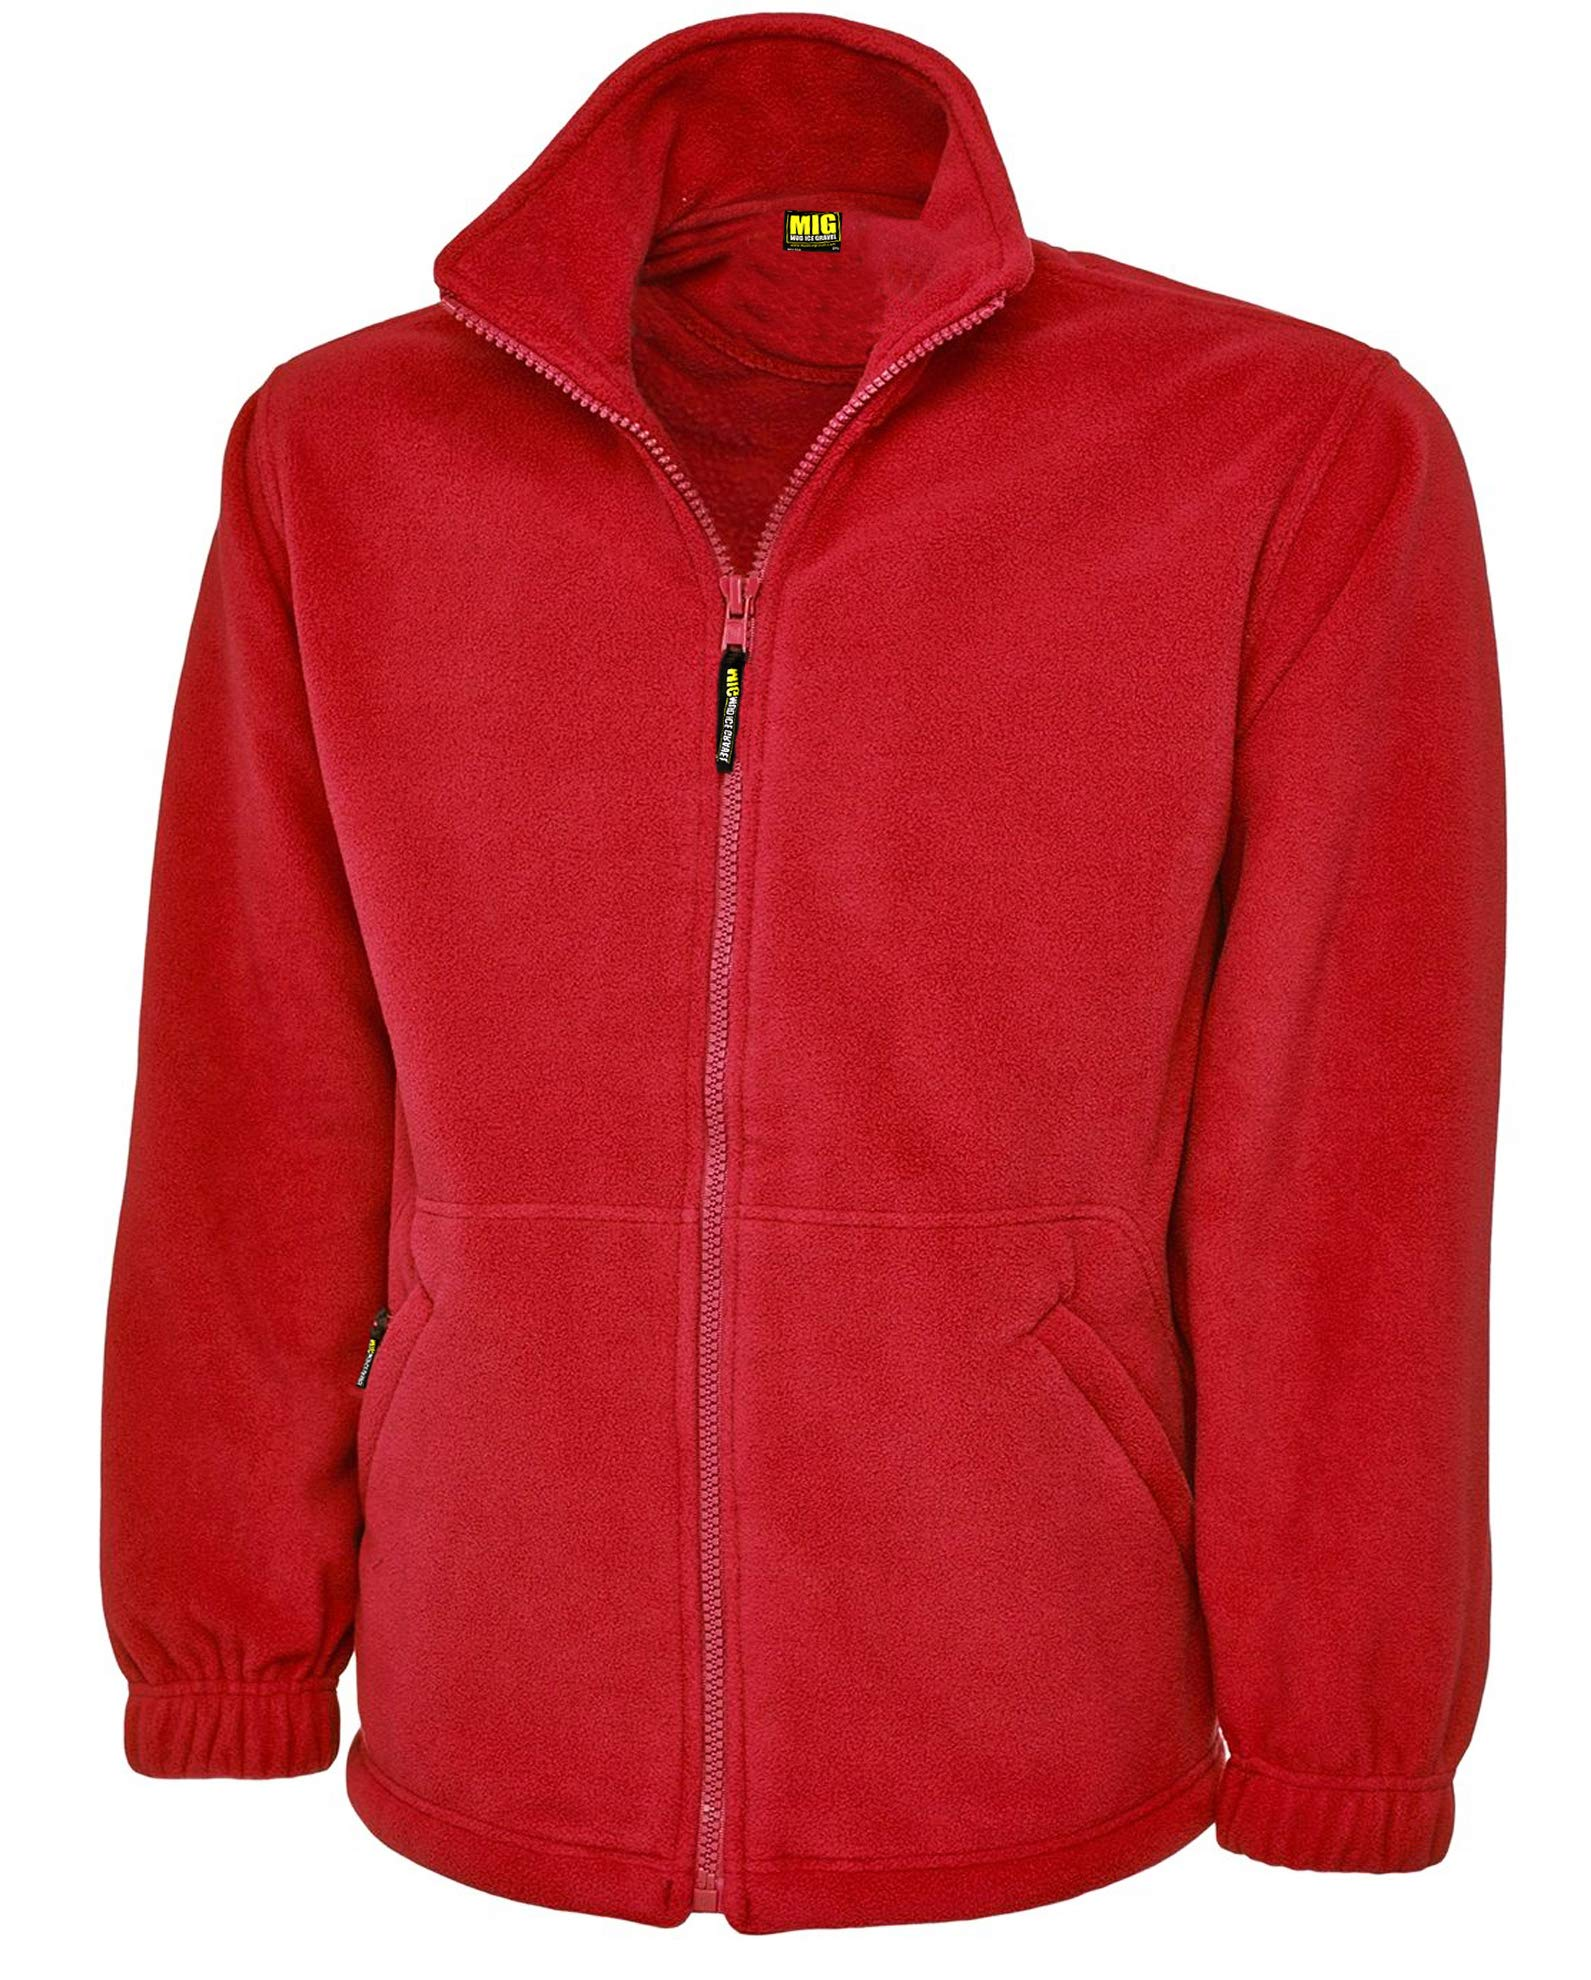 817OoxuNYmL - Ladies Full Zip Classic Fleece Jackets Sizes 8 to 30 - SUITABLE FOR WORK & LEISURE